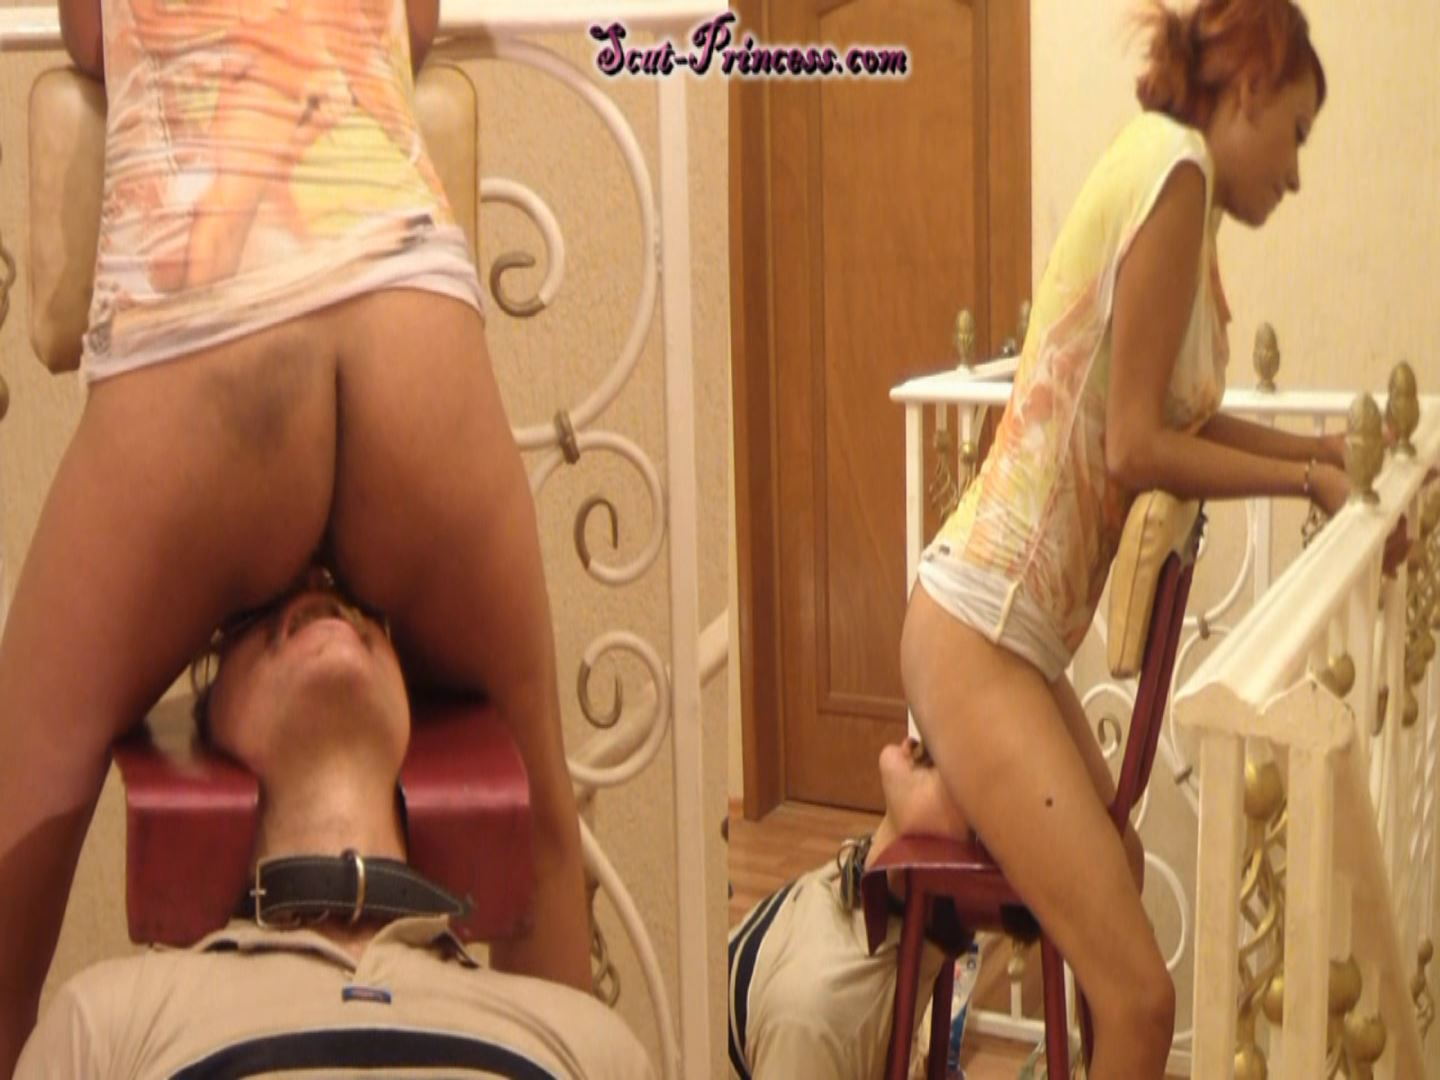 [SCAT-PRINCESS] Office World upside down, Boss becomes Slave Part 1 Britany [FULL HD][1080p][WMV]